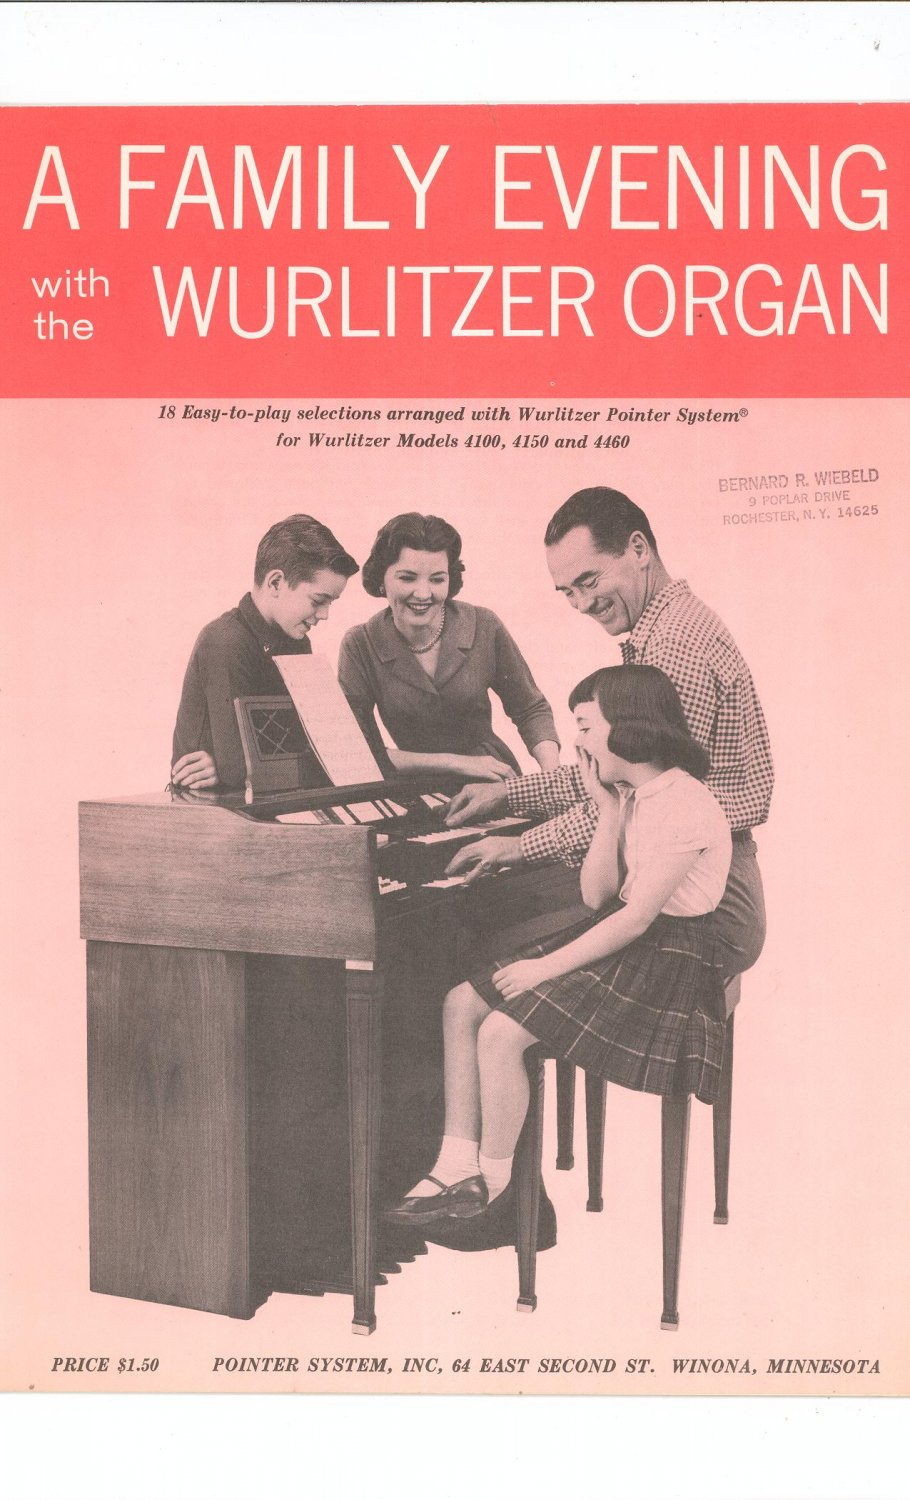 Vintage A Family Evening With The Wurlitzer Organ 1961